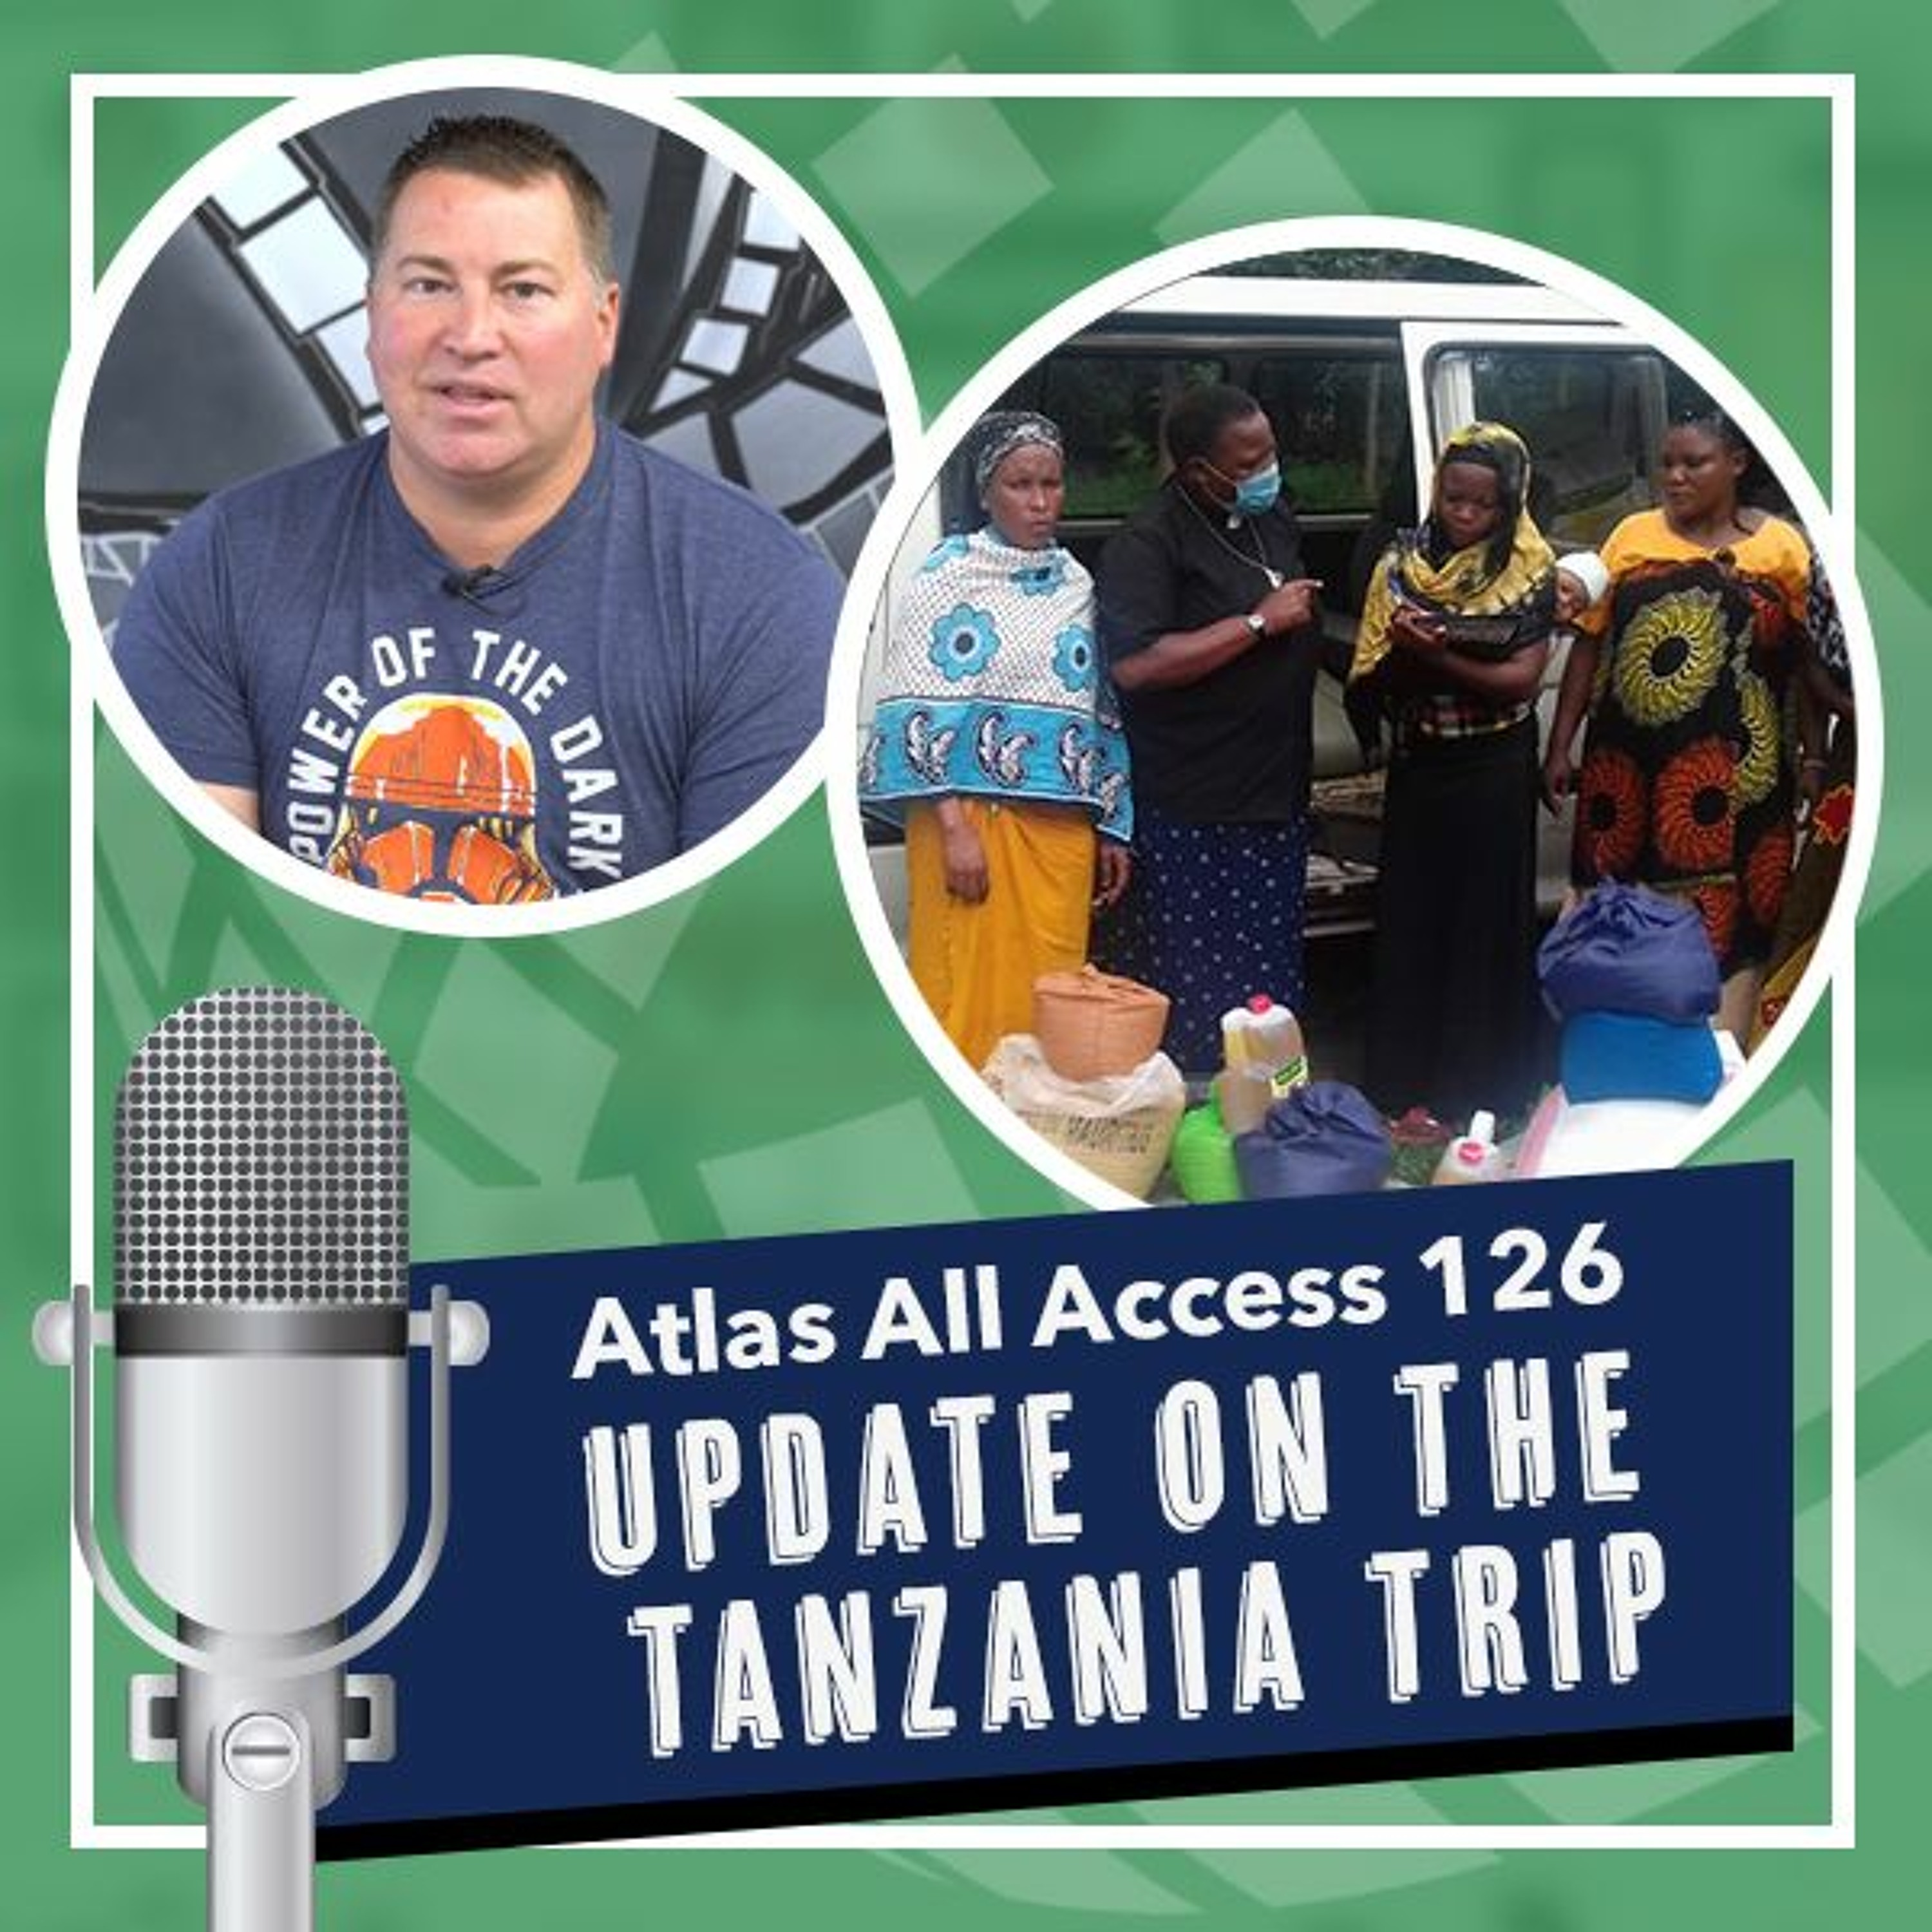 Giving back to Tanzania and those that you can - Atlas All Access 126